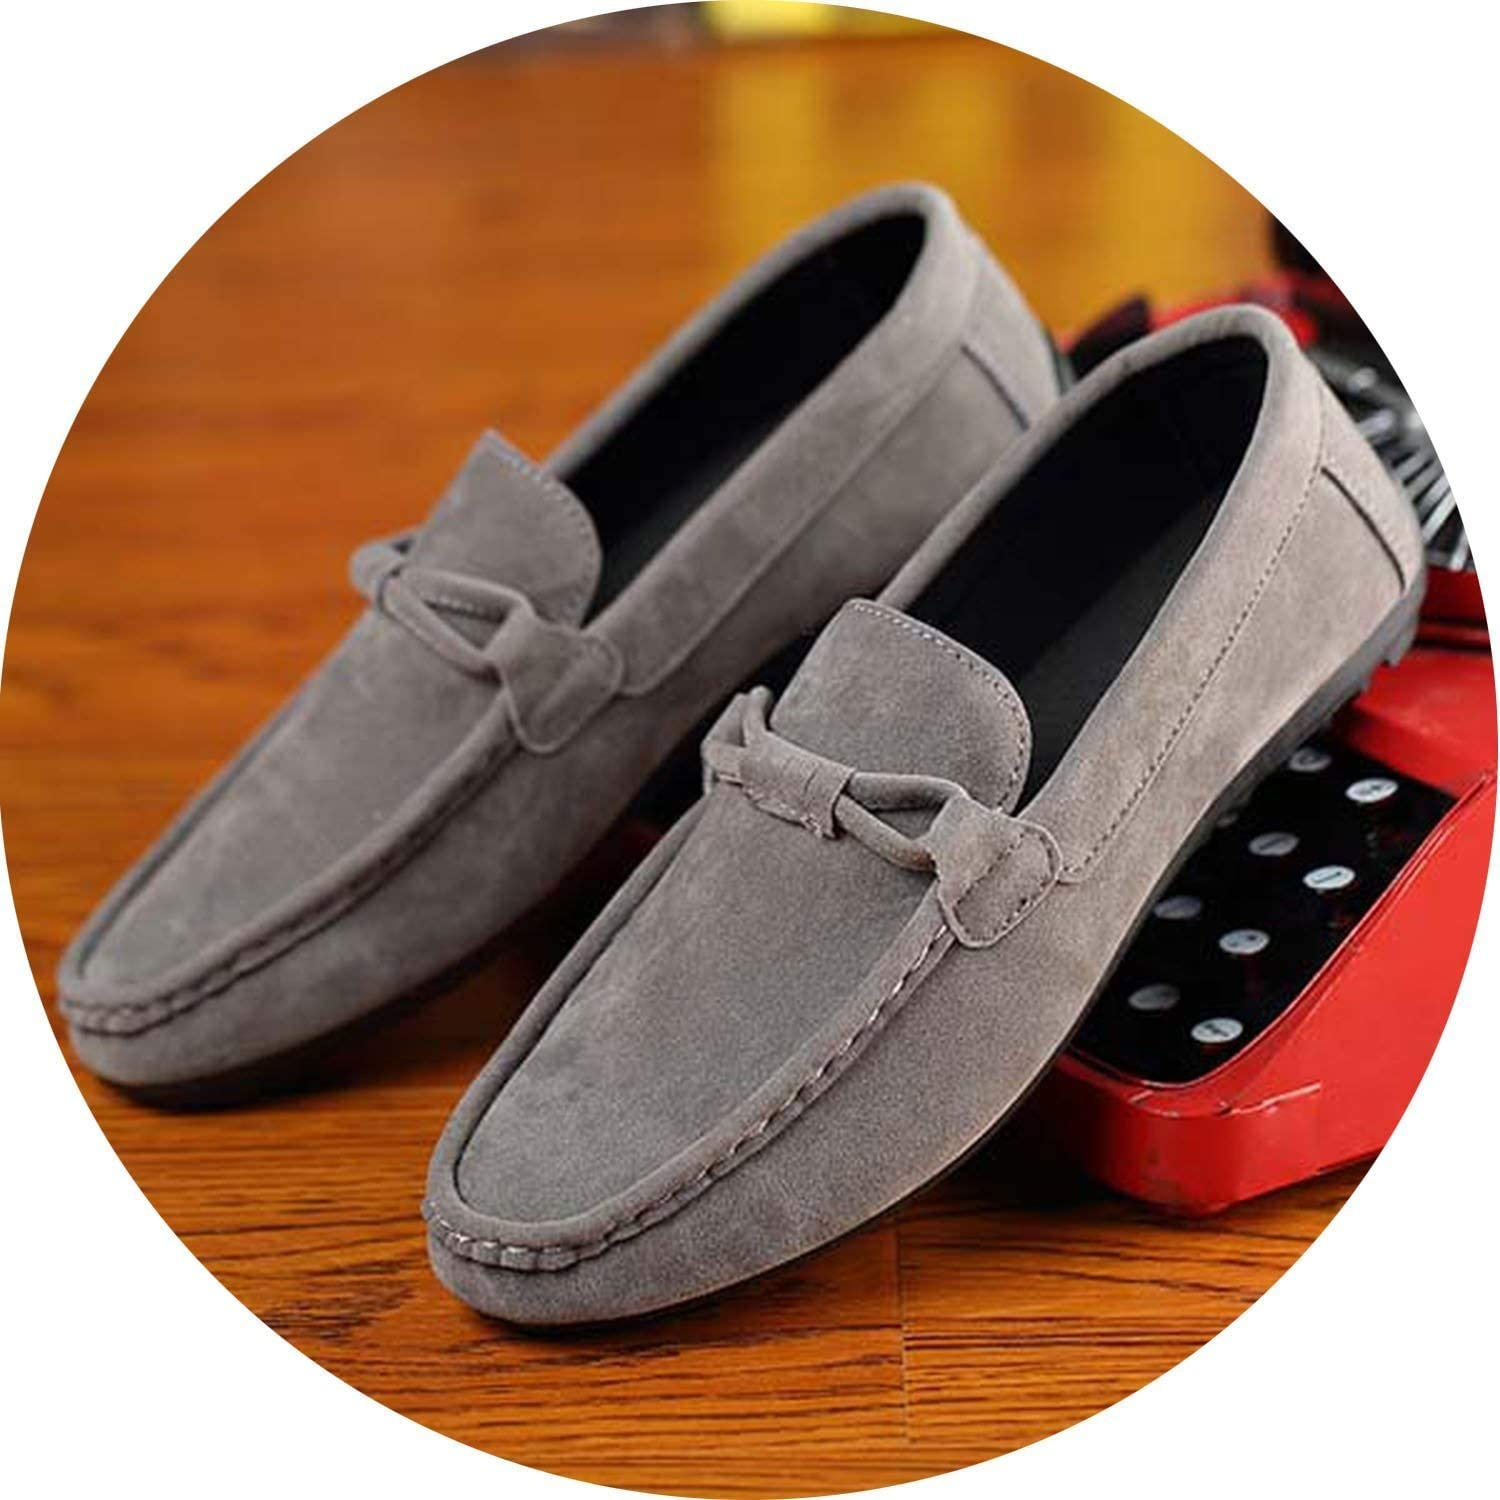 Romantico New Spring Summer 2019 Driving Comfortable Casual shoes Men Flats Moccasins Slip On Loafers Men Oxfords shoes